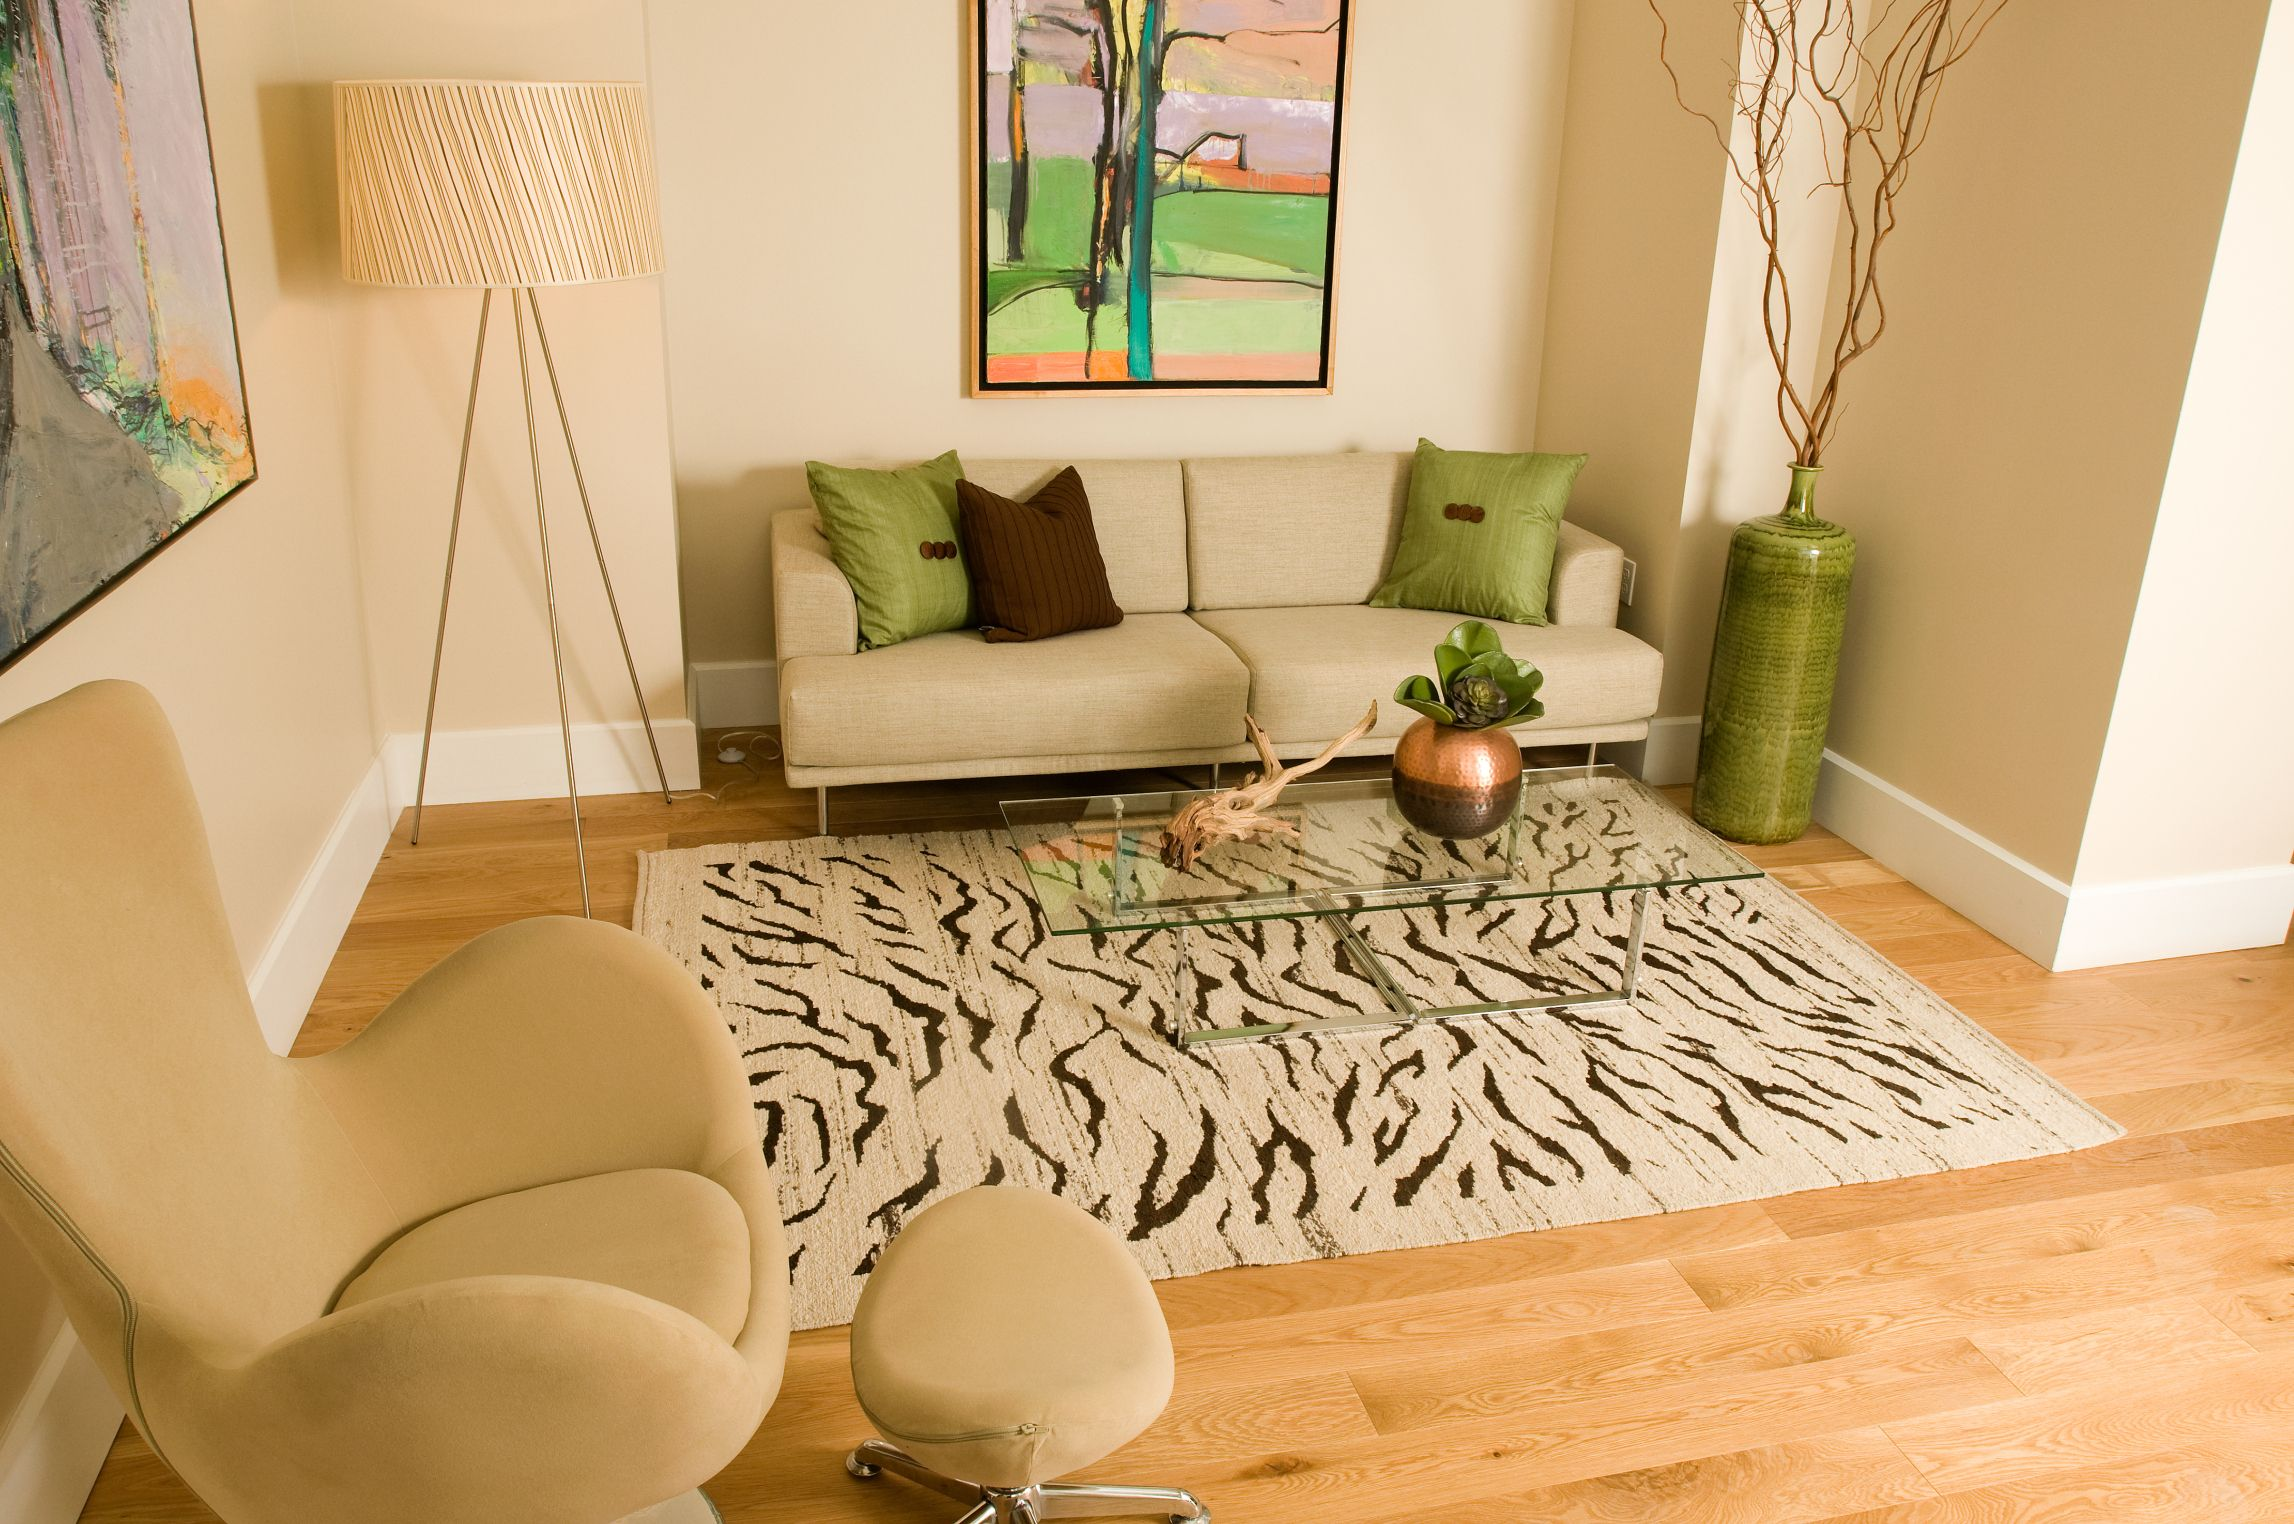 how to keep rugs from sliding on tile floors